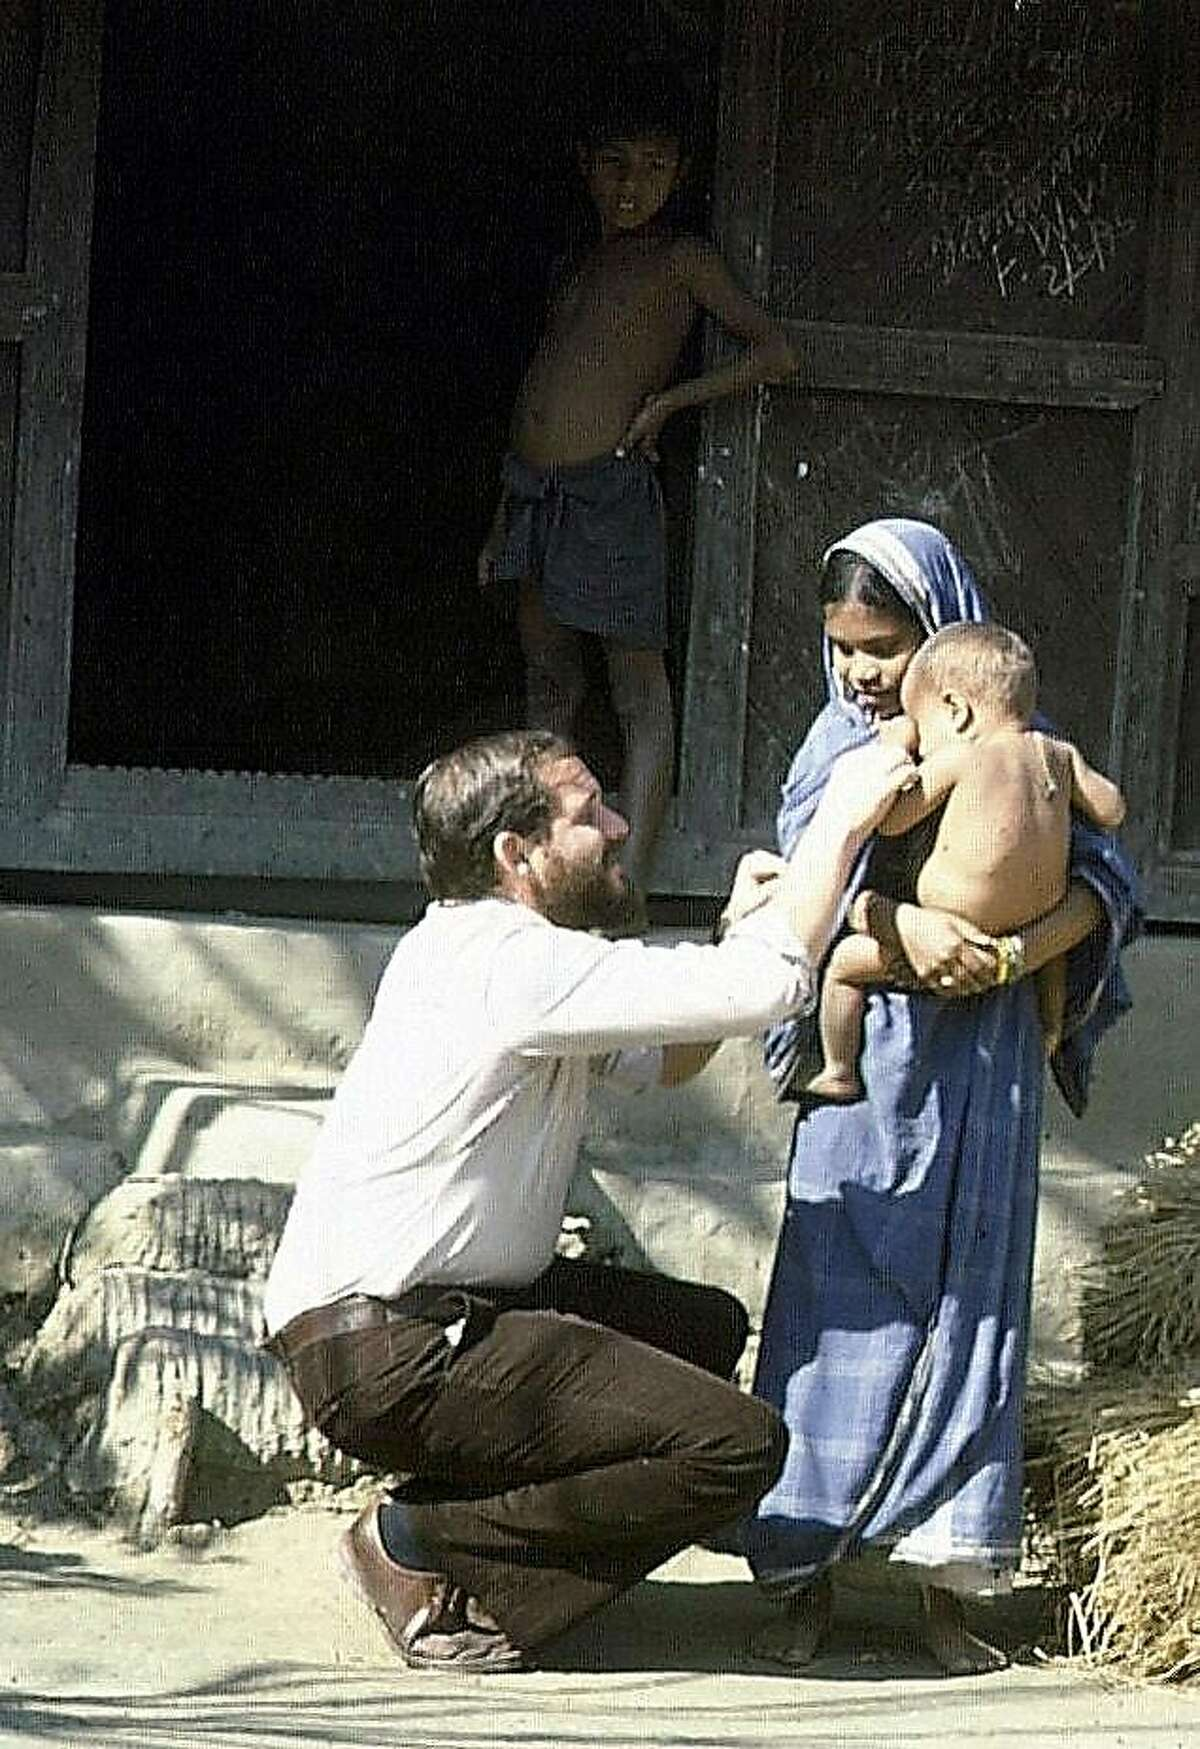 Larry Brilliant in India the 1970s working with the World Health Organization's efforts to eradicate Smallpox.� 'courtesy of Seva Foundation'.